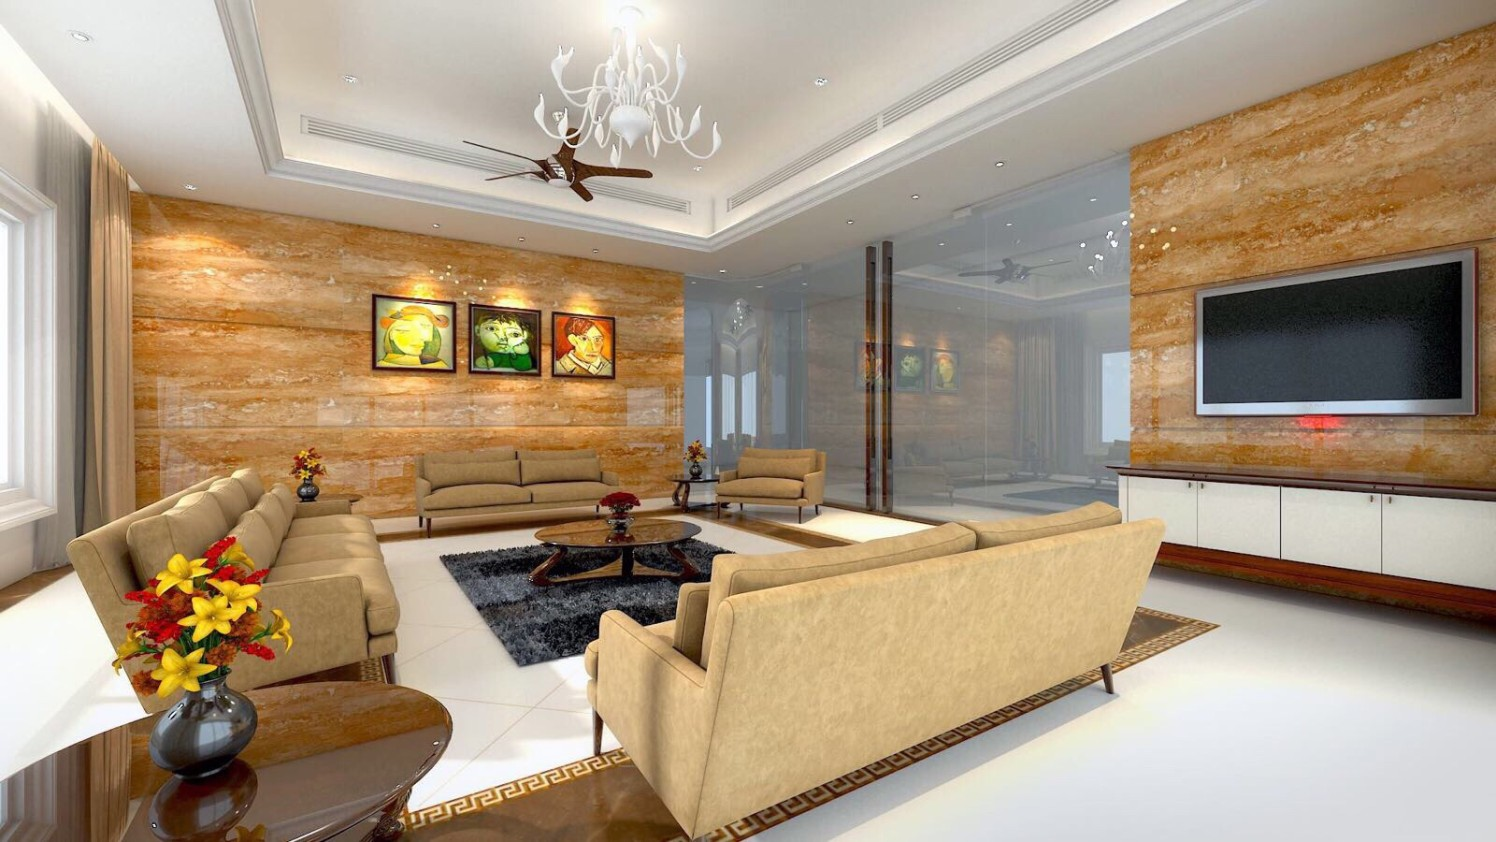 Wheat Shaded sofa Set With White Chandelier by Anshuma Vaidya Bora Living-room Modern | Interior Design Photos & Ideas